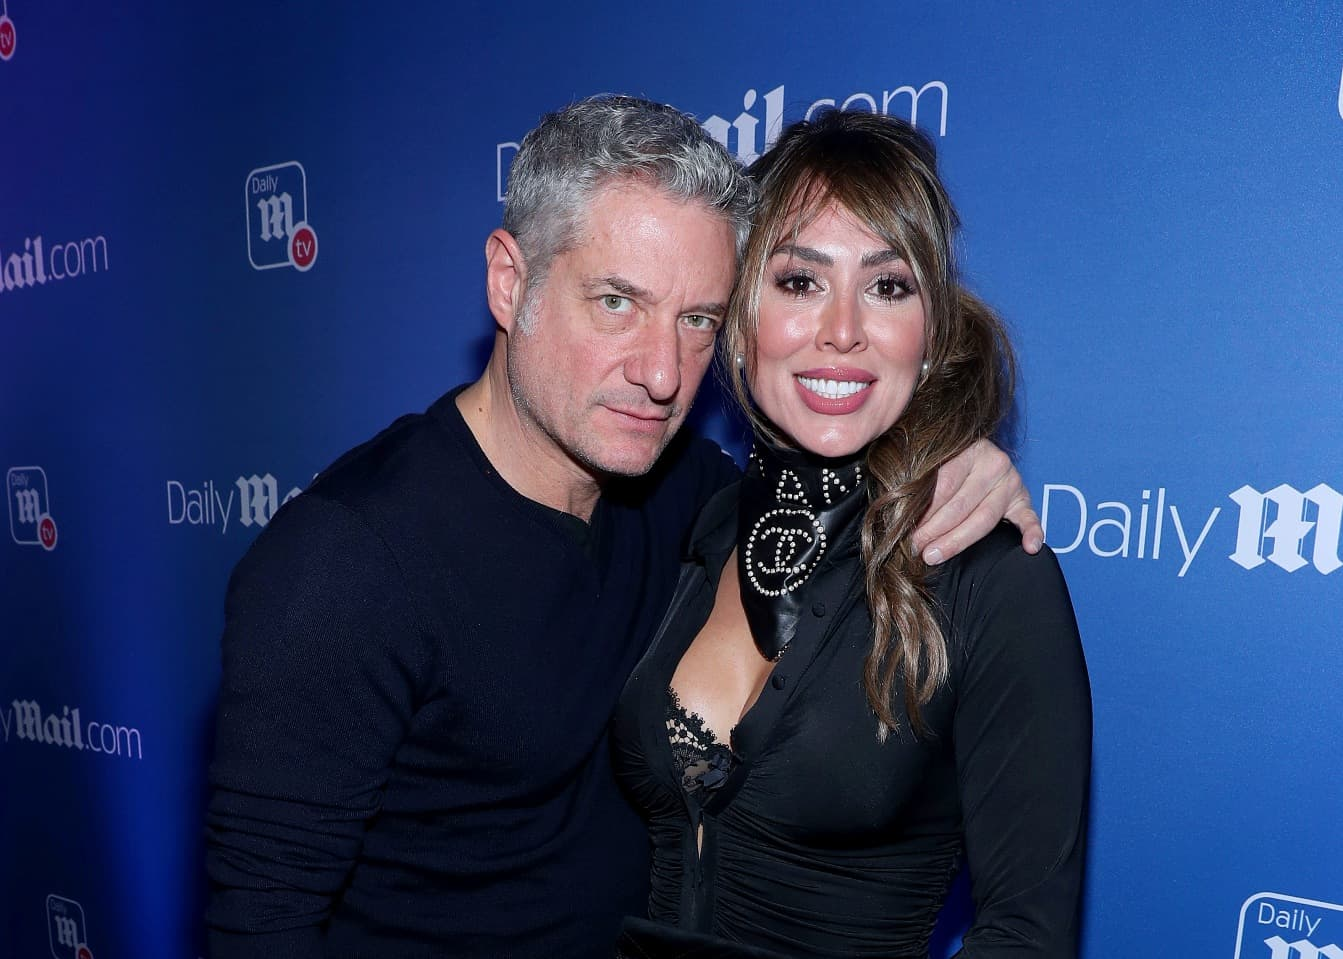 """Rick Leventhal Is Leaving Fox News After More Than 20 Years, Read the Network's Statement as Kelly Dodd Teases """"Better"""" and """"Exciting News"""""""